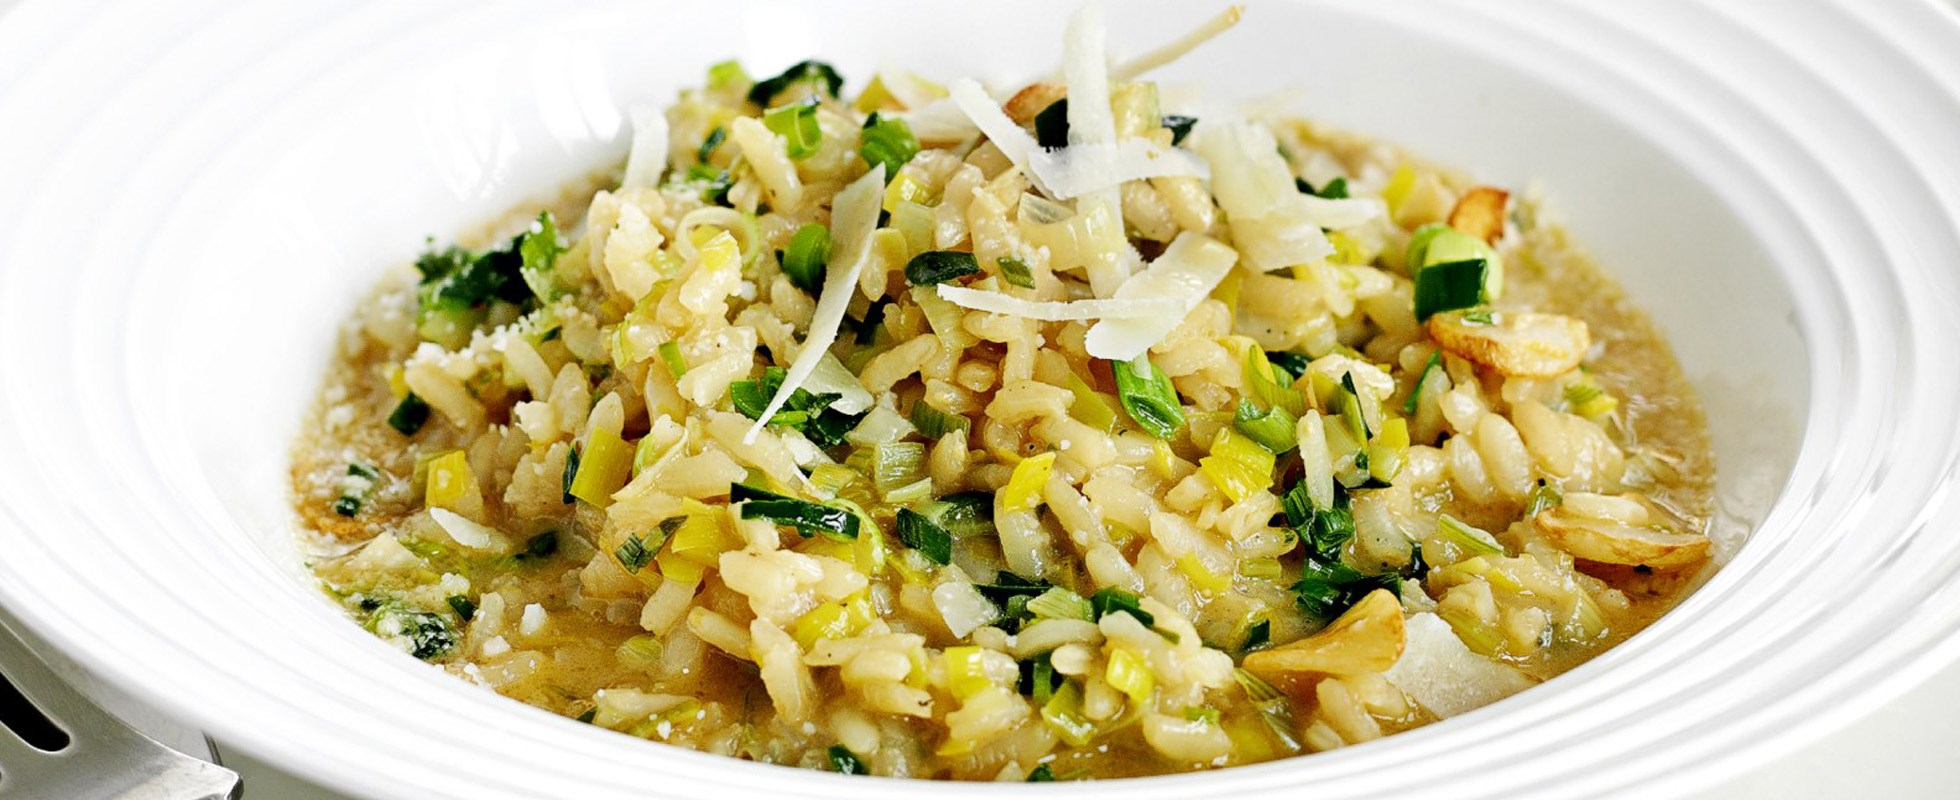 Leek and parmesan risotto